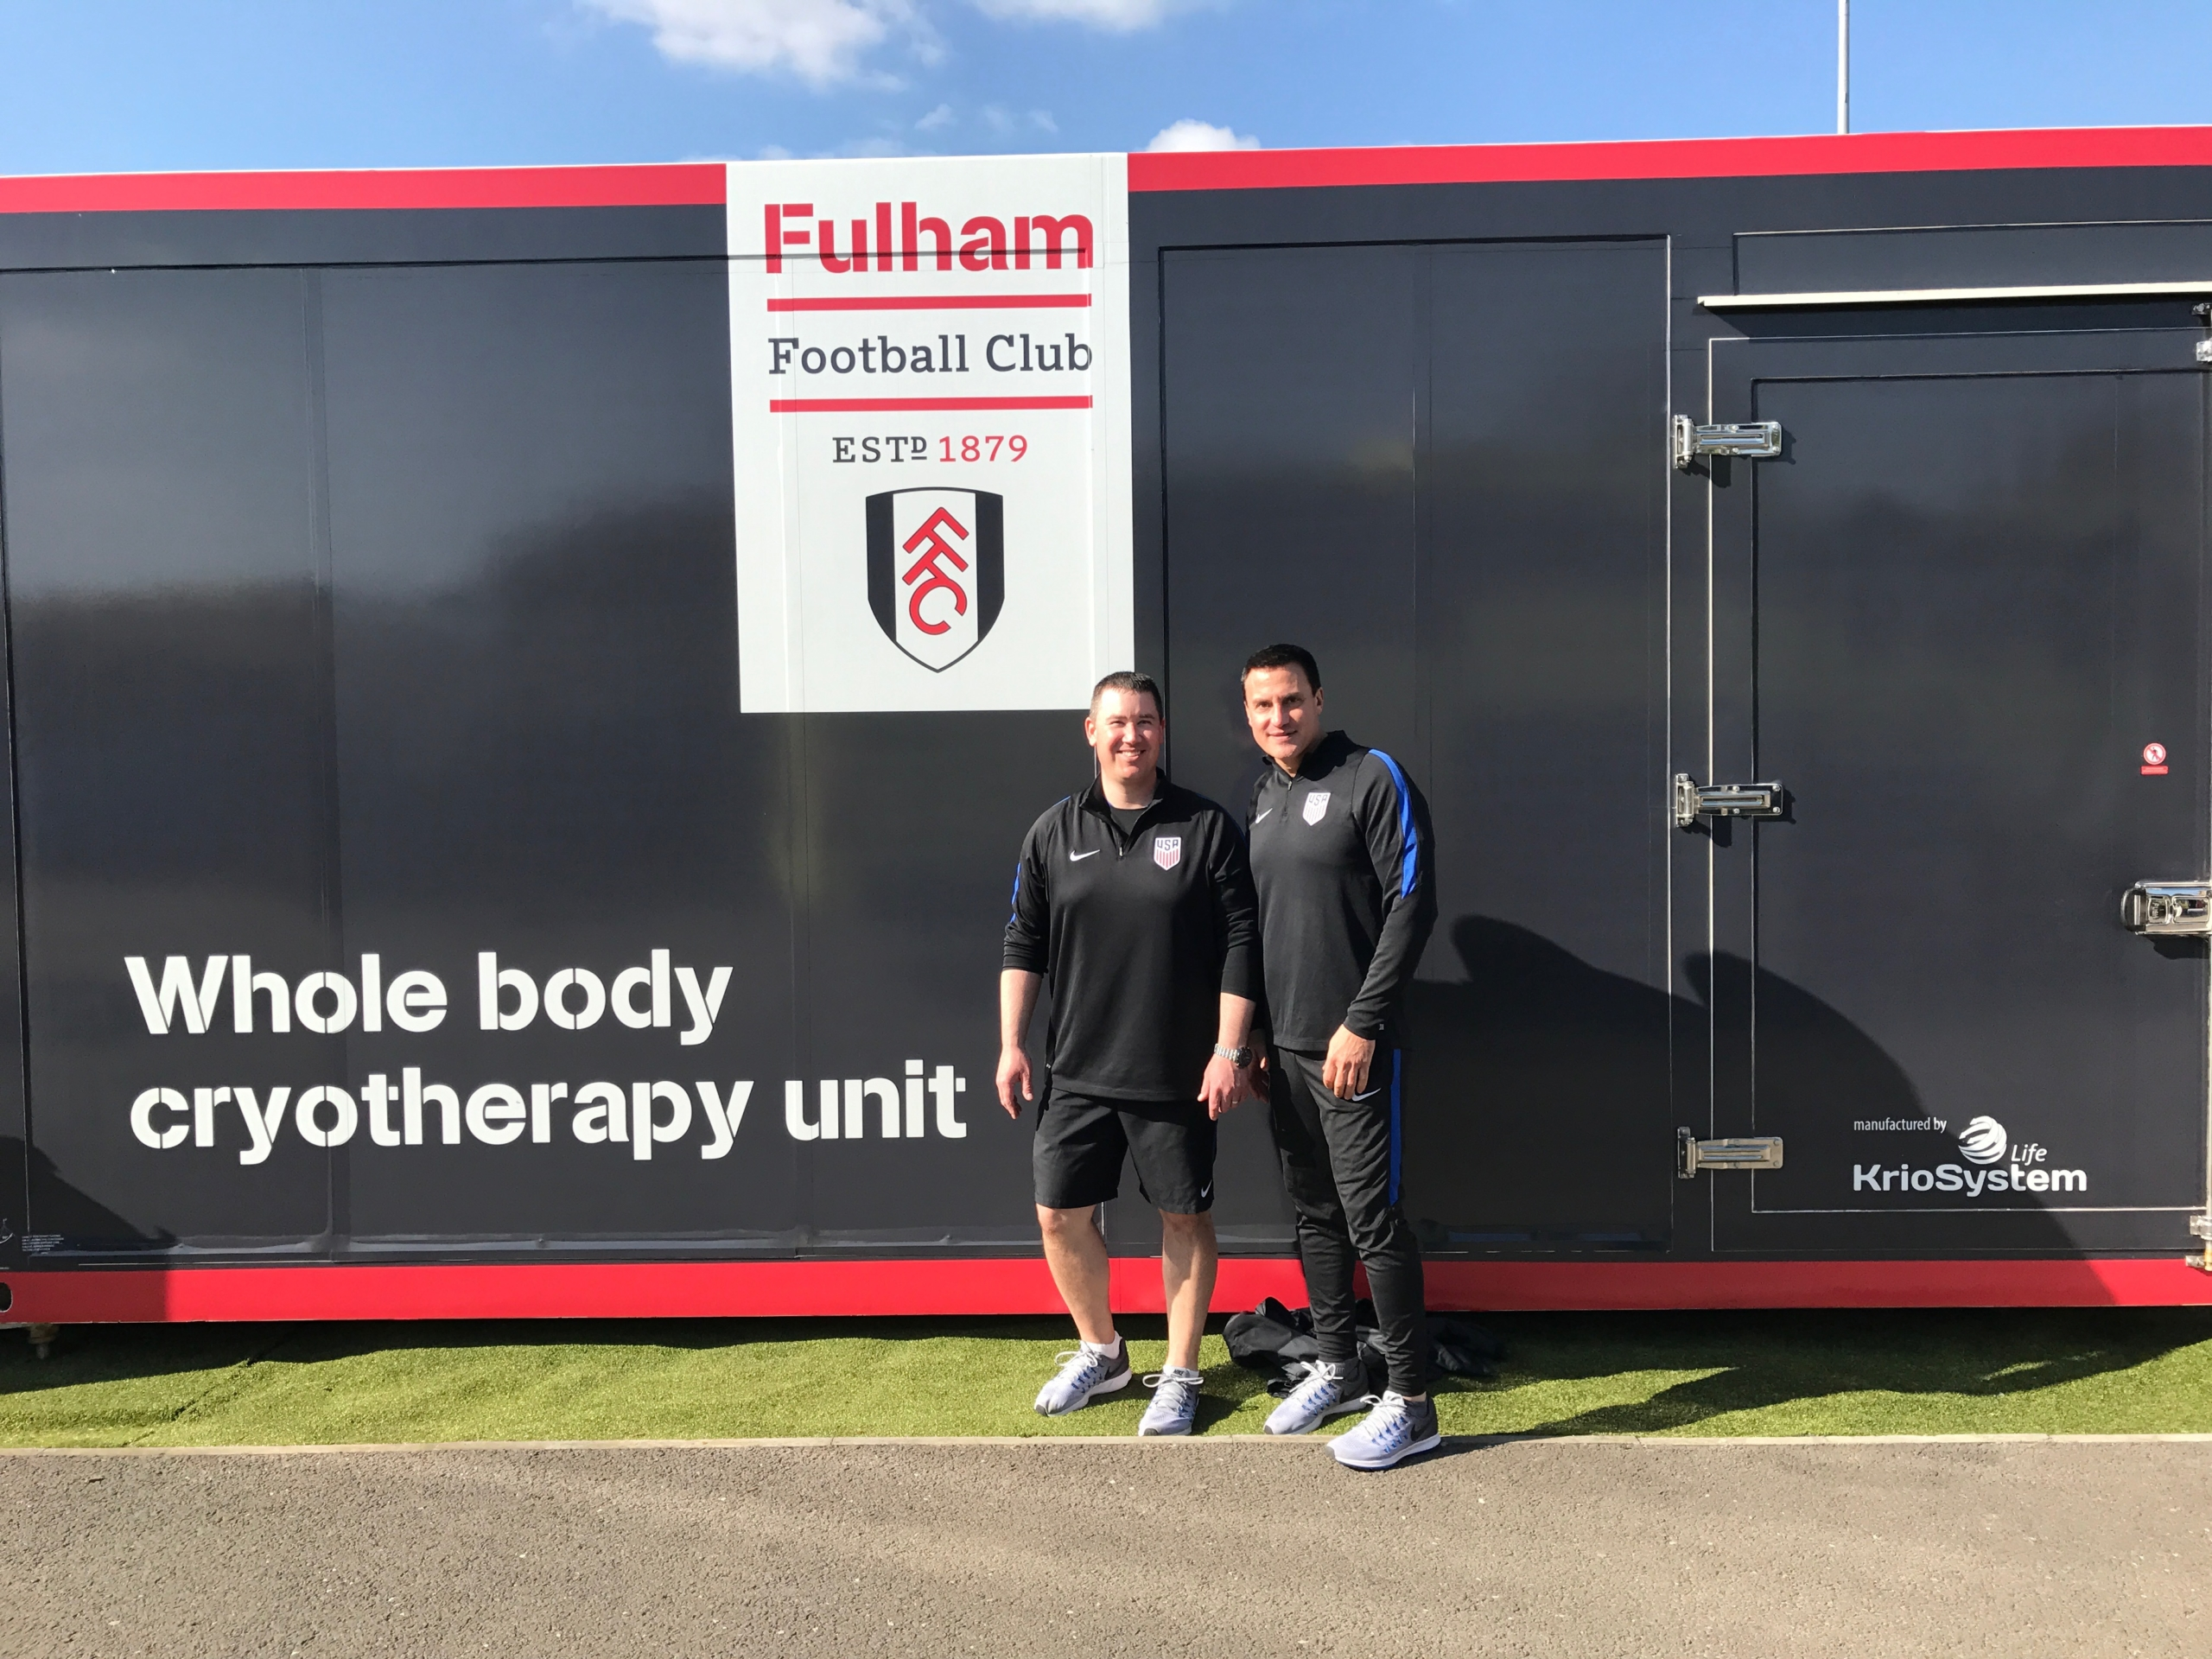 Dr Chams and Paul Ziemba ATC travel with US Soccer to England